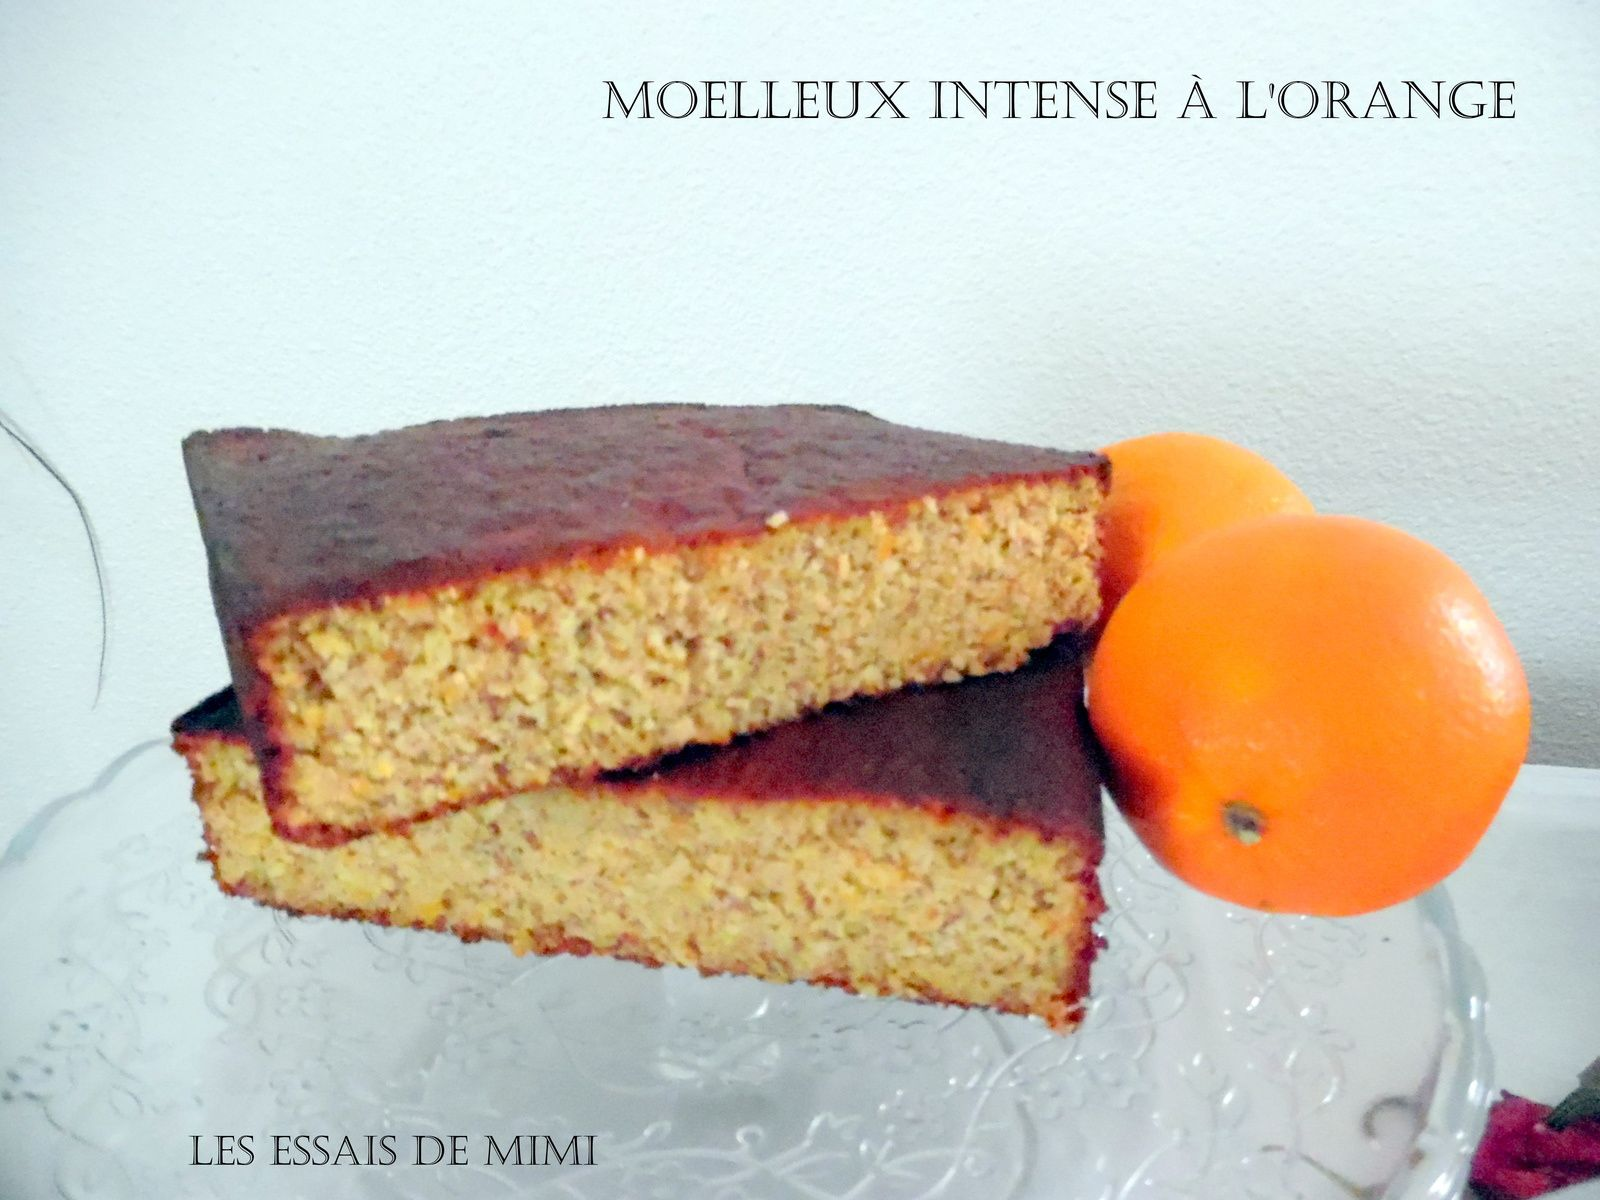 Moelleux intense à l'orange